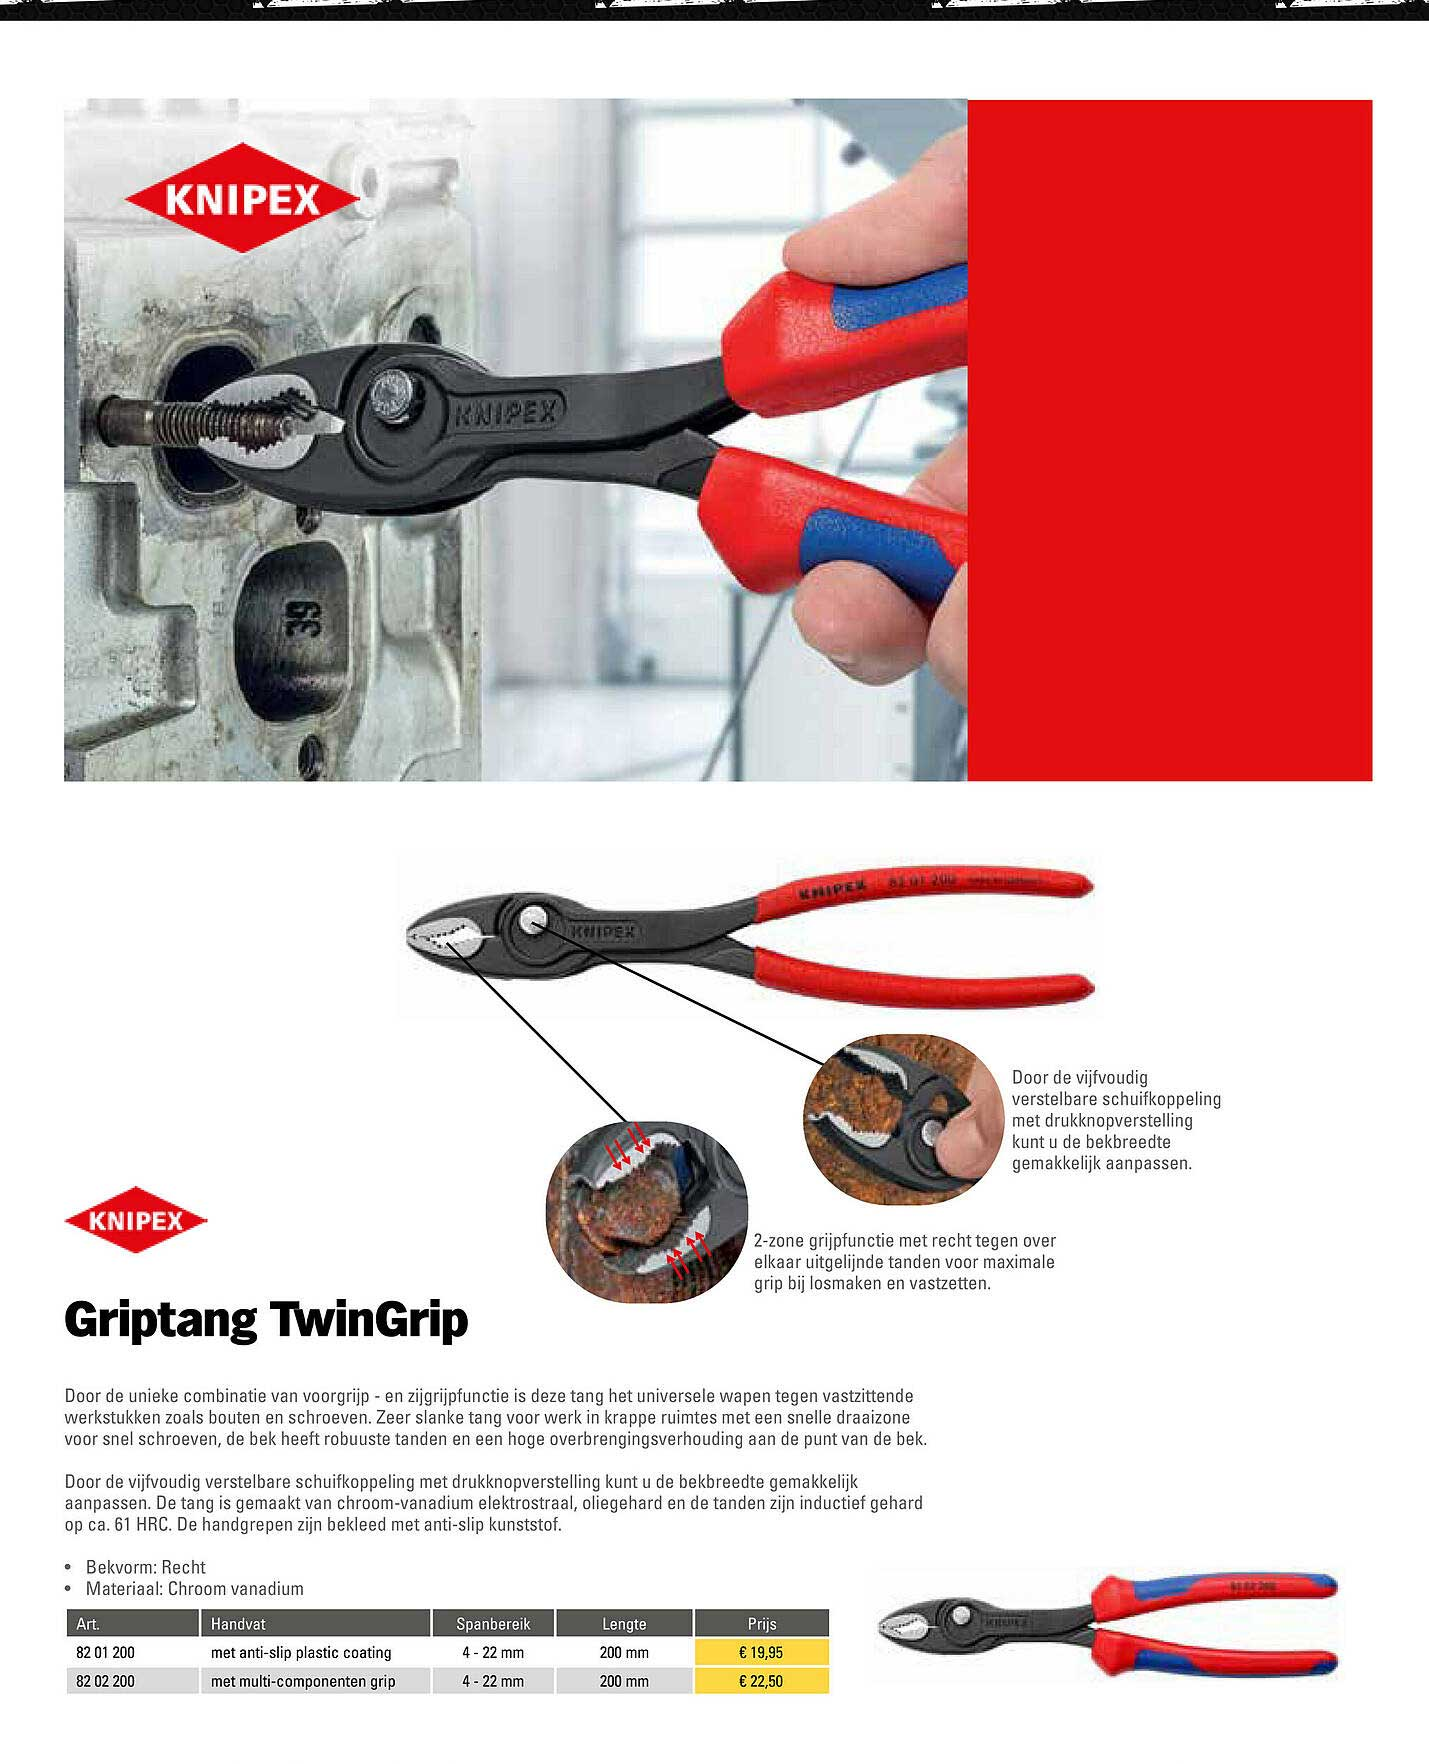 Toolspecial Knipex Griptang TwinGrip